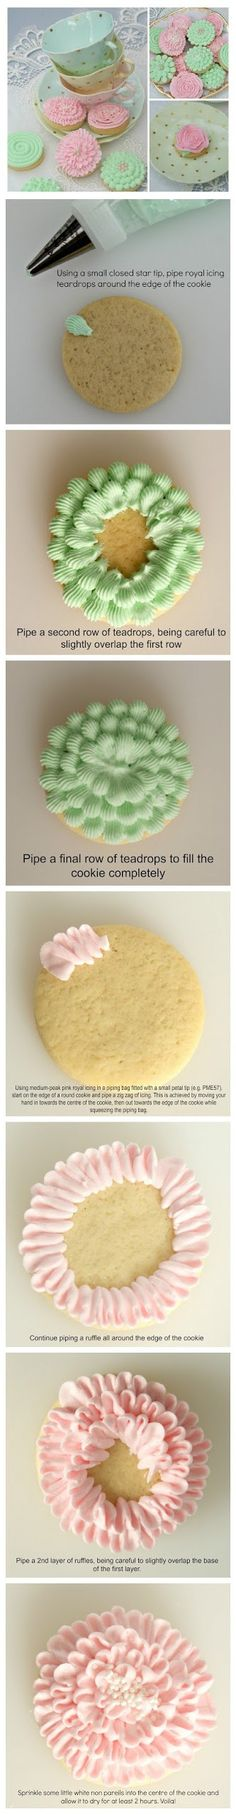 How to Pipe Pretty Springtime Cookies